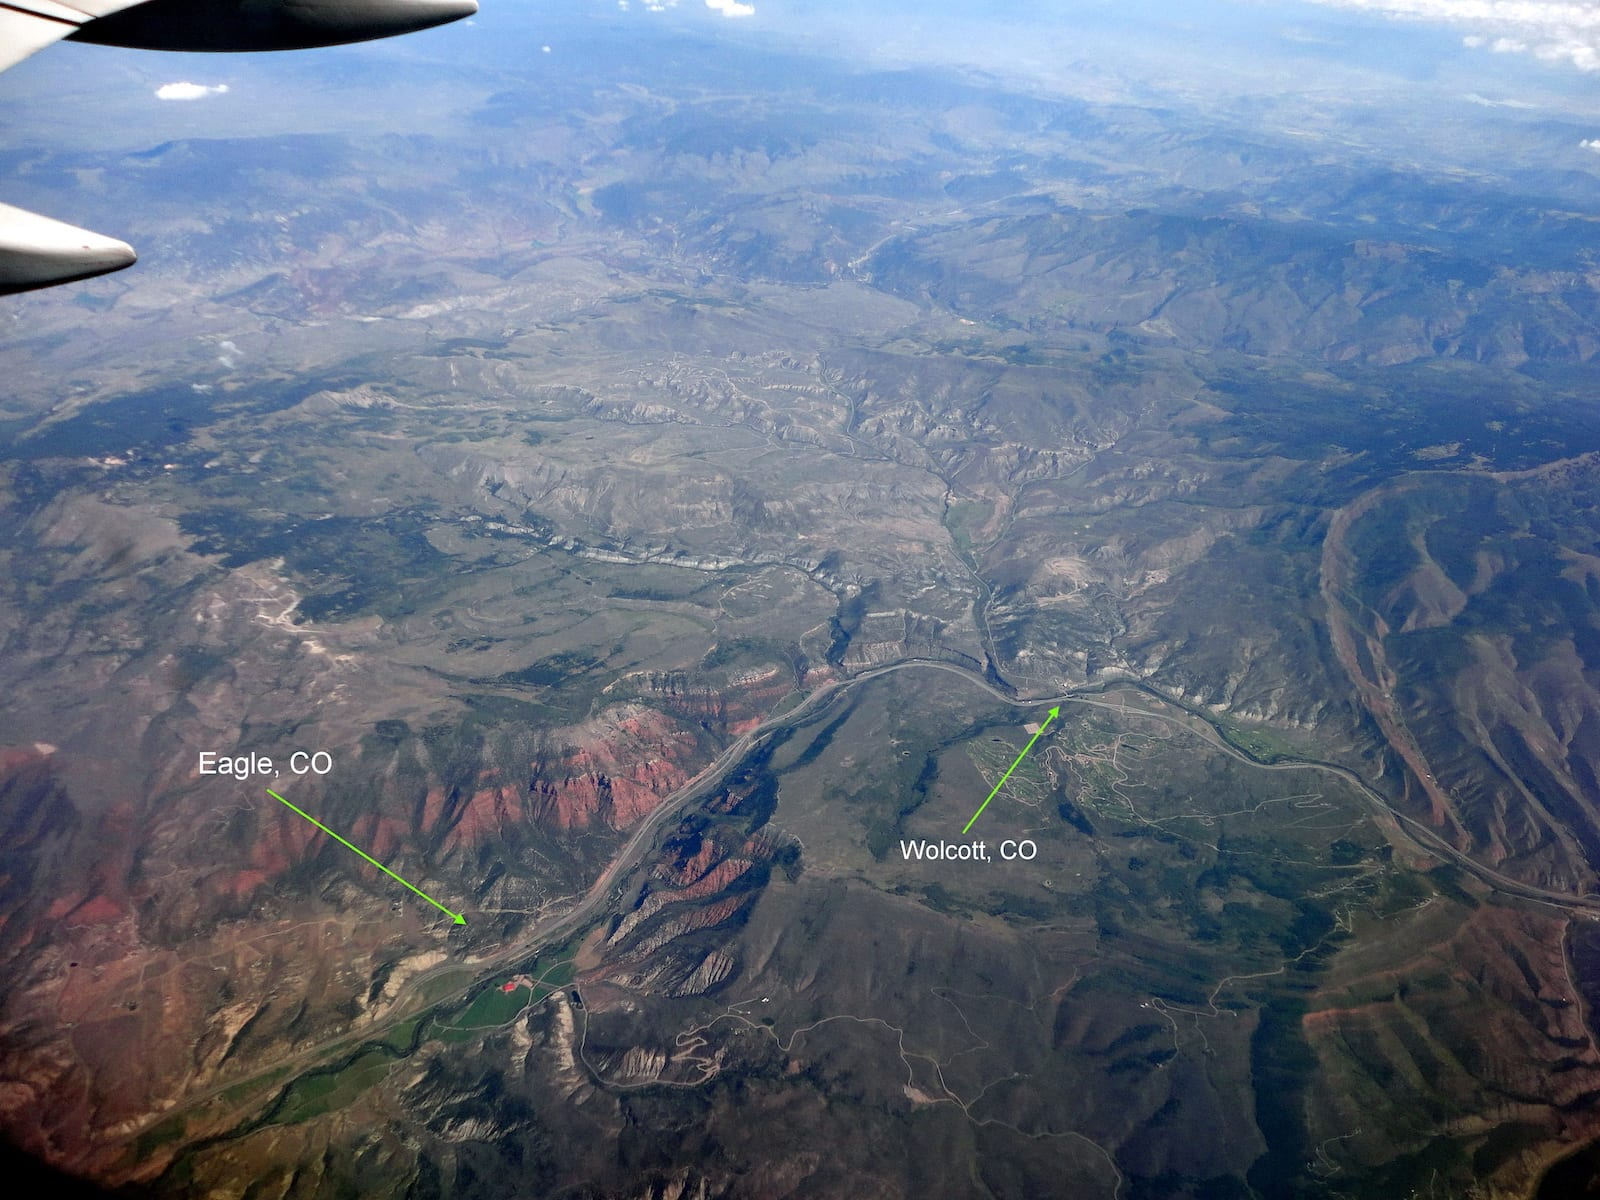 Wolcott and Eagle, CO Aerial View